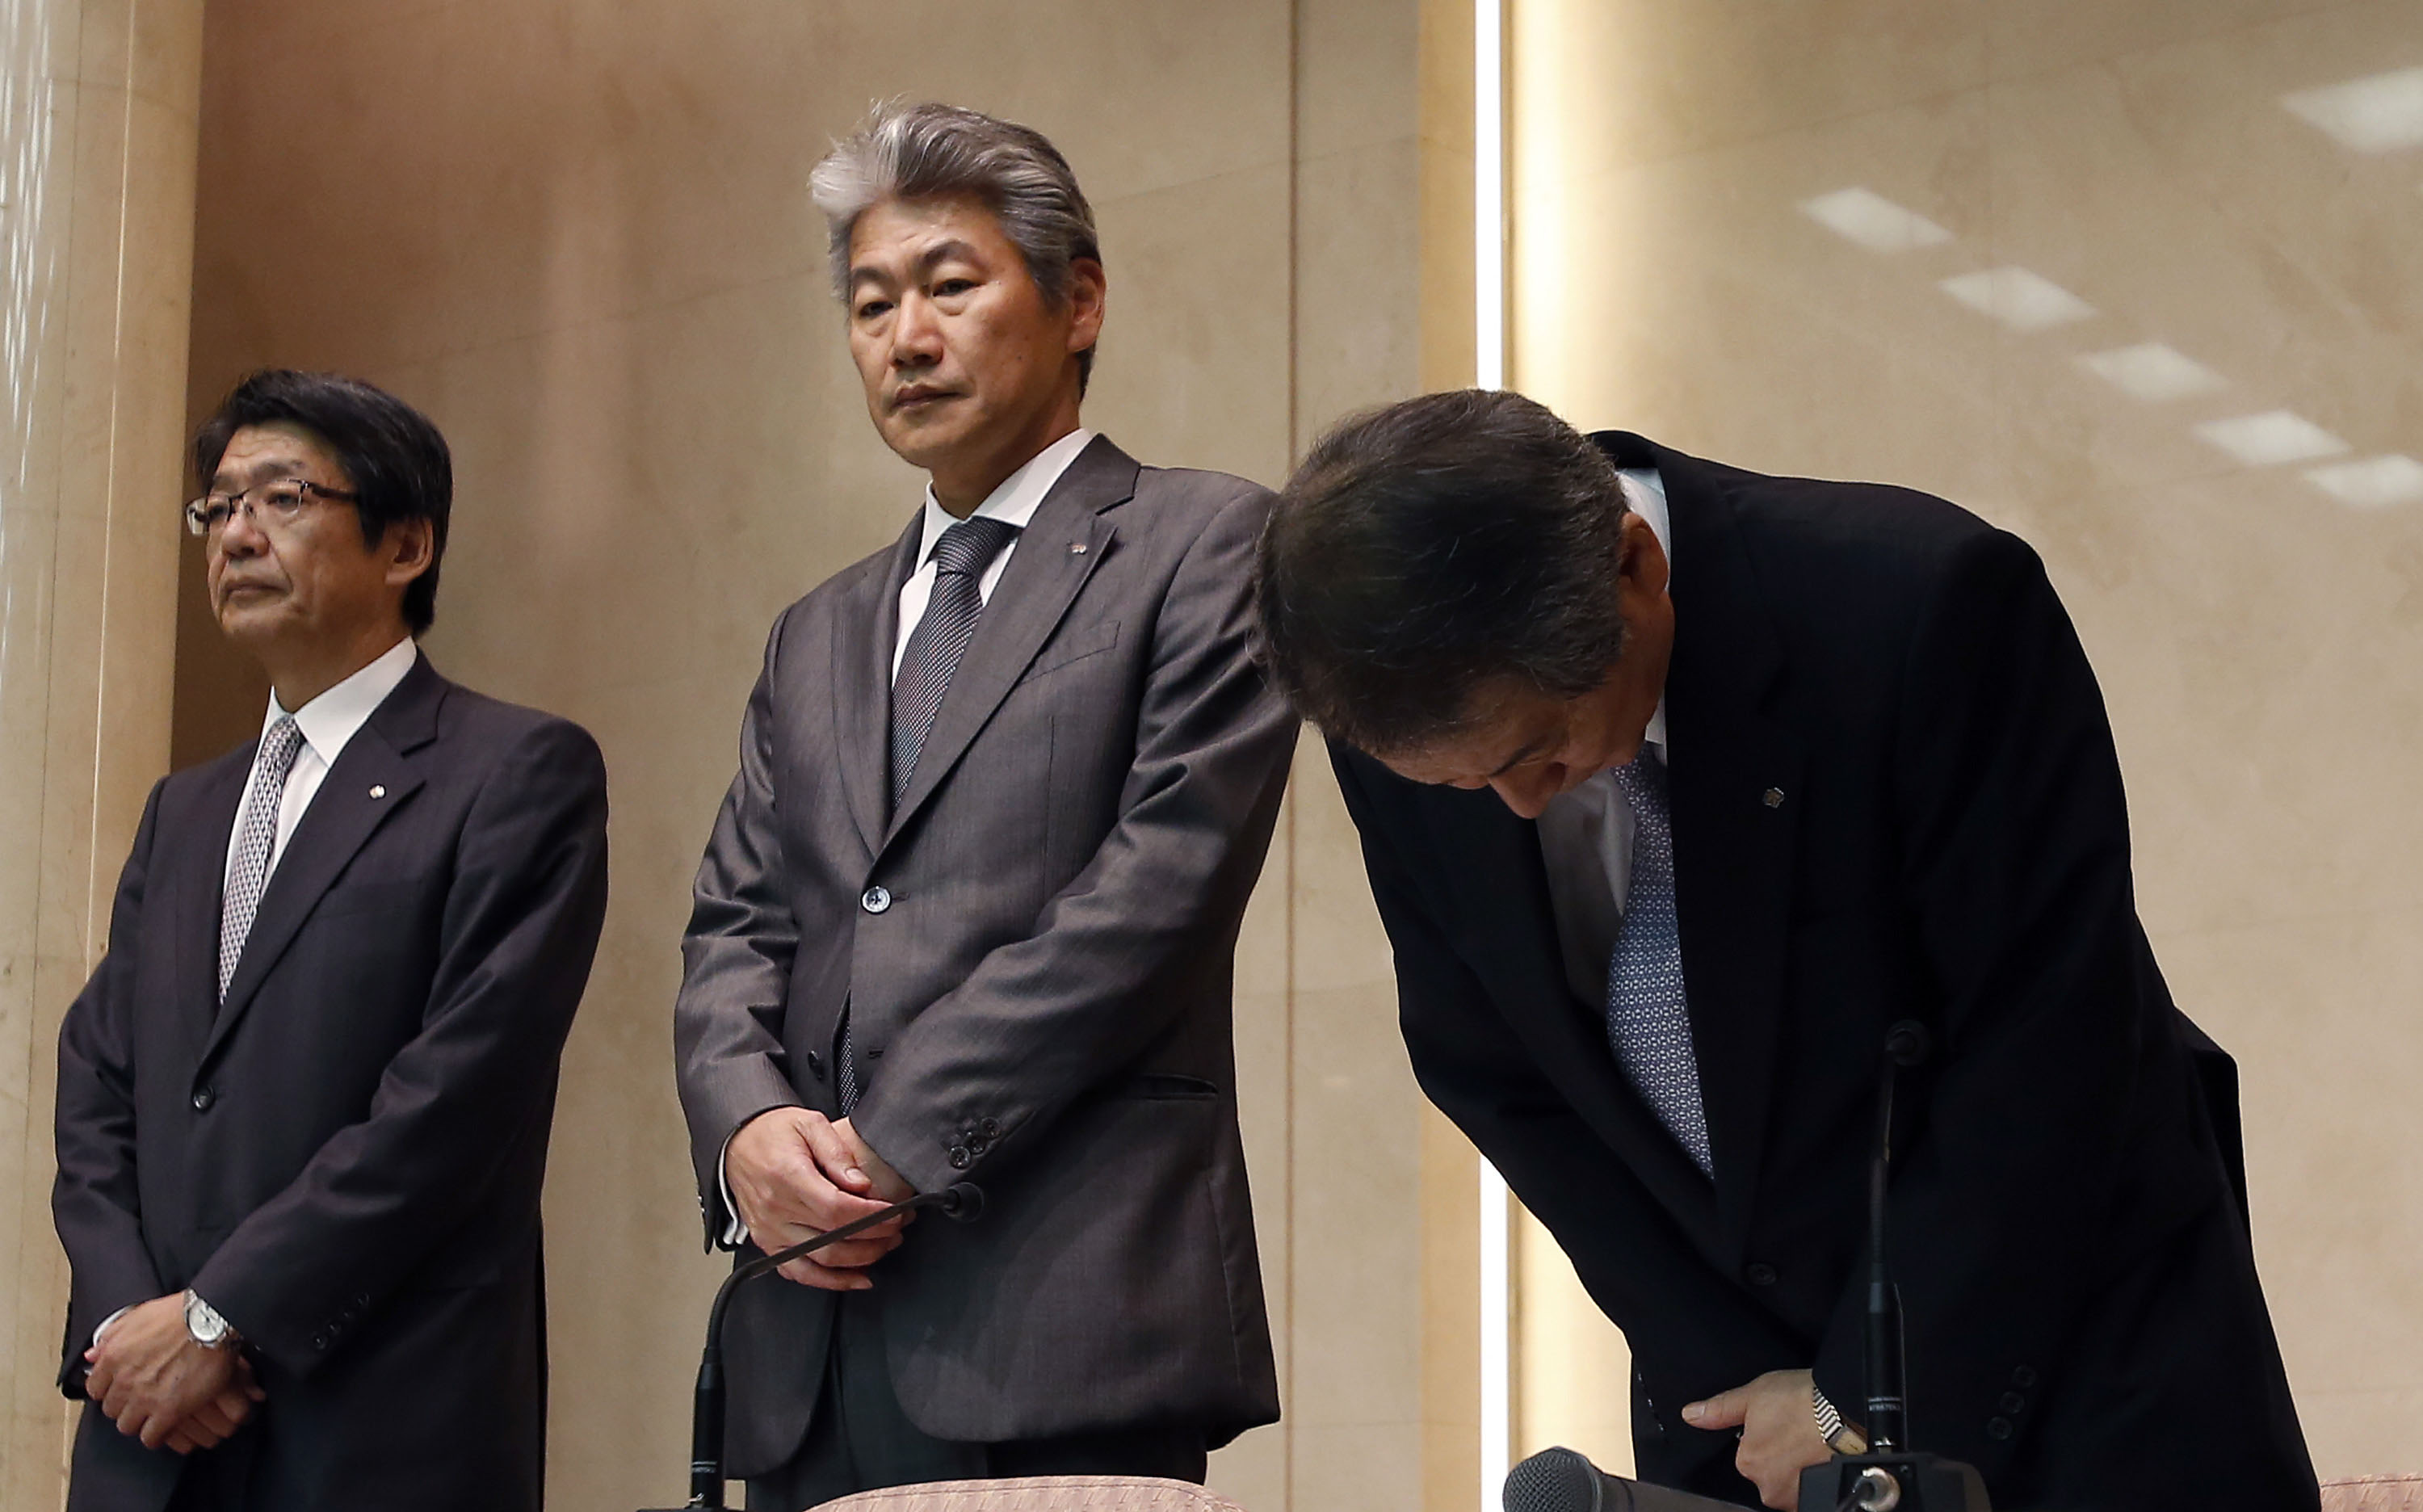 New beginning: Nomura Holdings Ltd. CEO Kenichi Watanabe bows next to Nomura Securities Co. President Koji Nagai (center) and Senior Managing Director Shoichi Nagamatsu at the start of a news conference in Tokyo on July 26. | AP